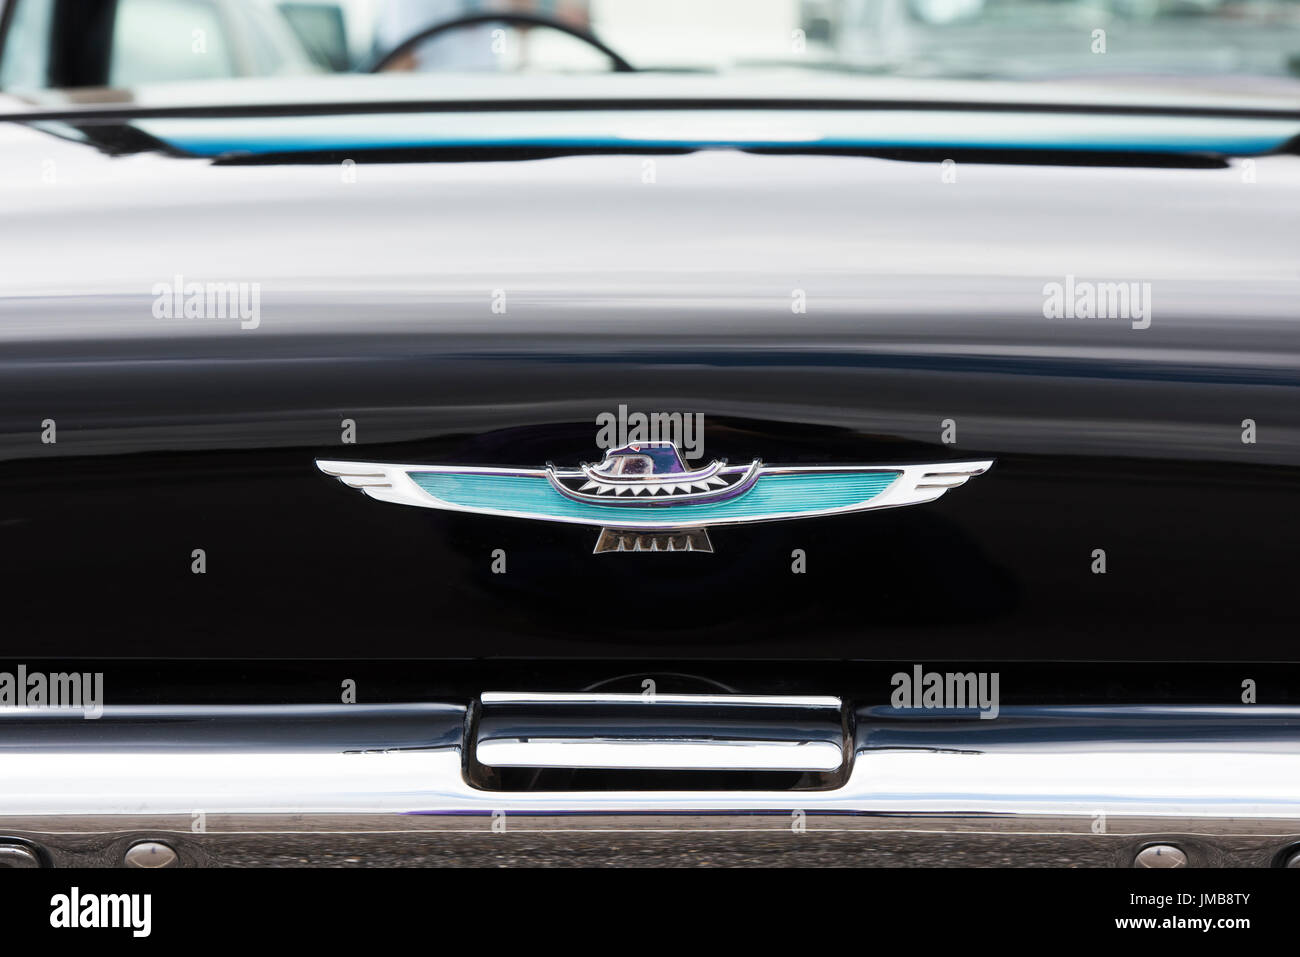 1962 Ford Thunderbird Rear End Winged Badge Abstract Classic Stock